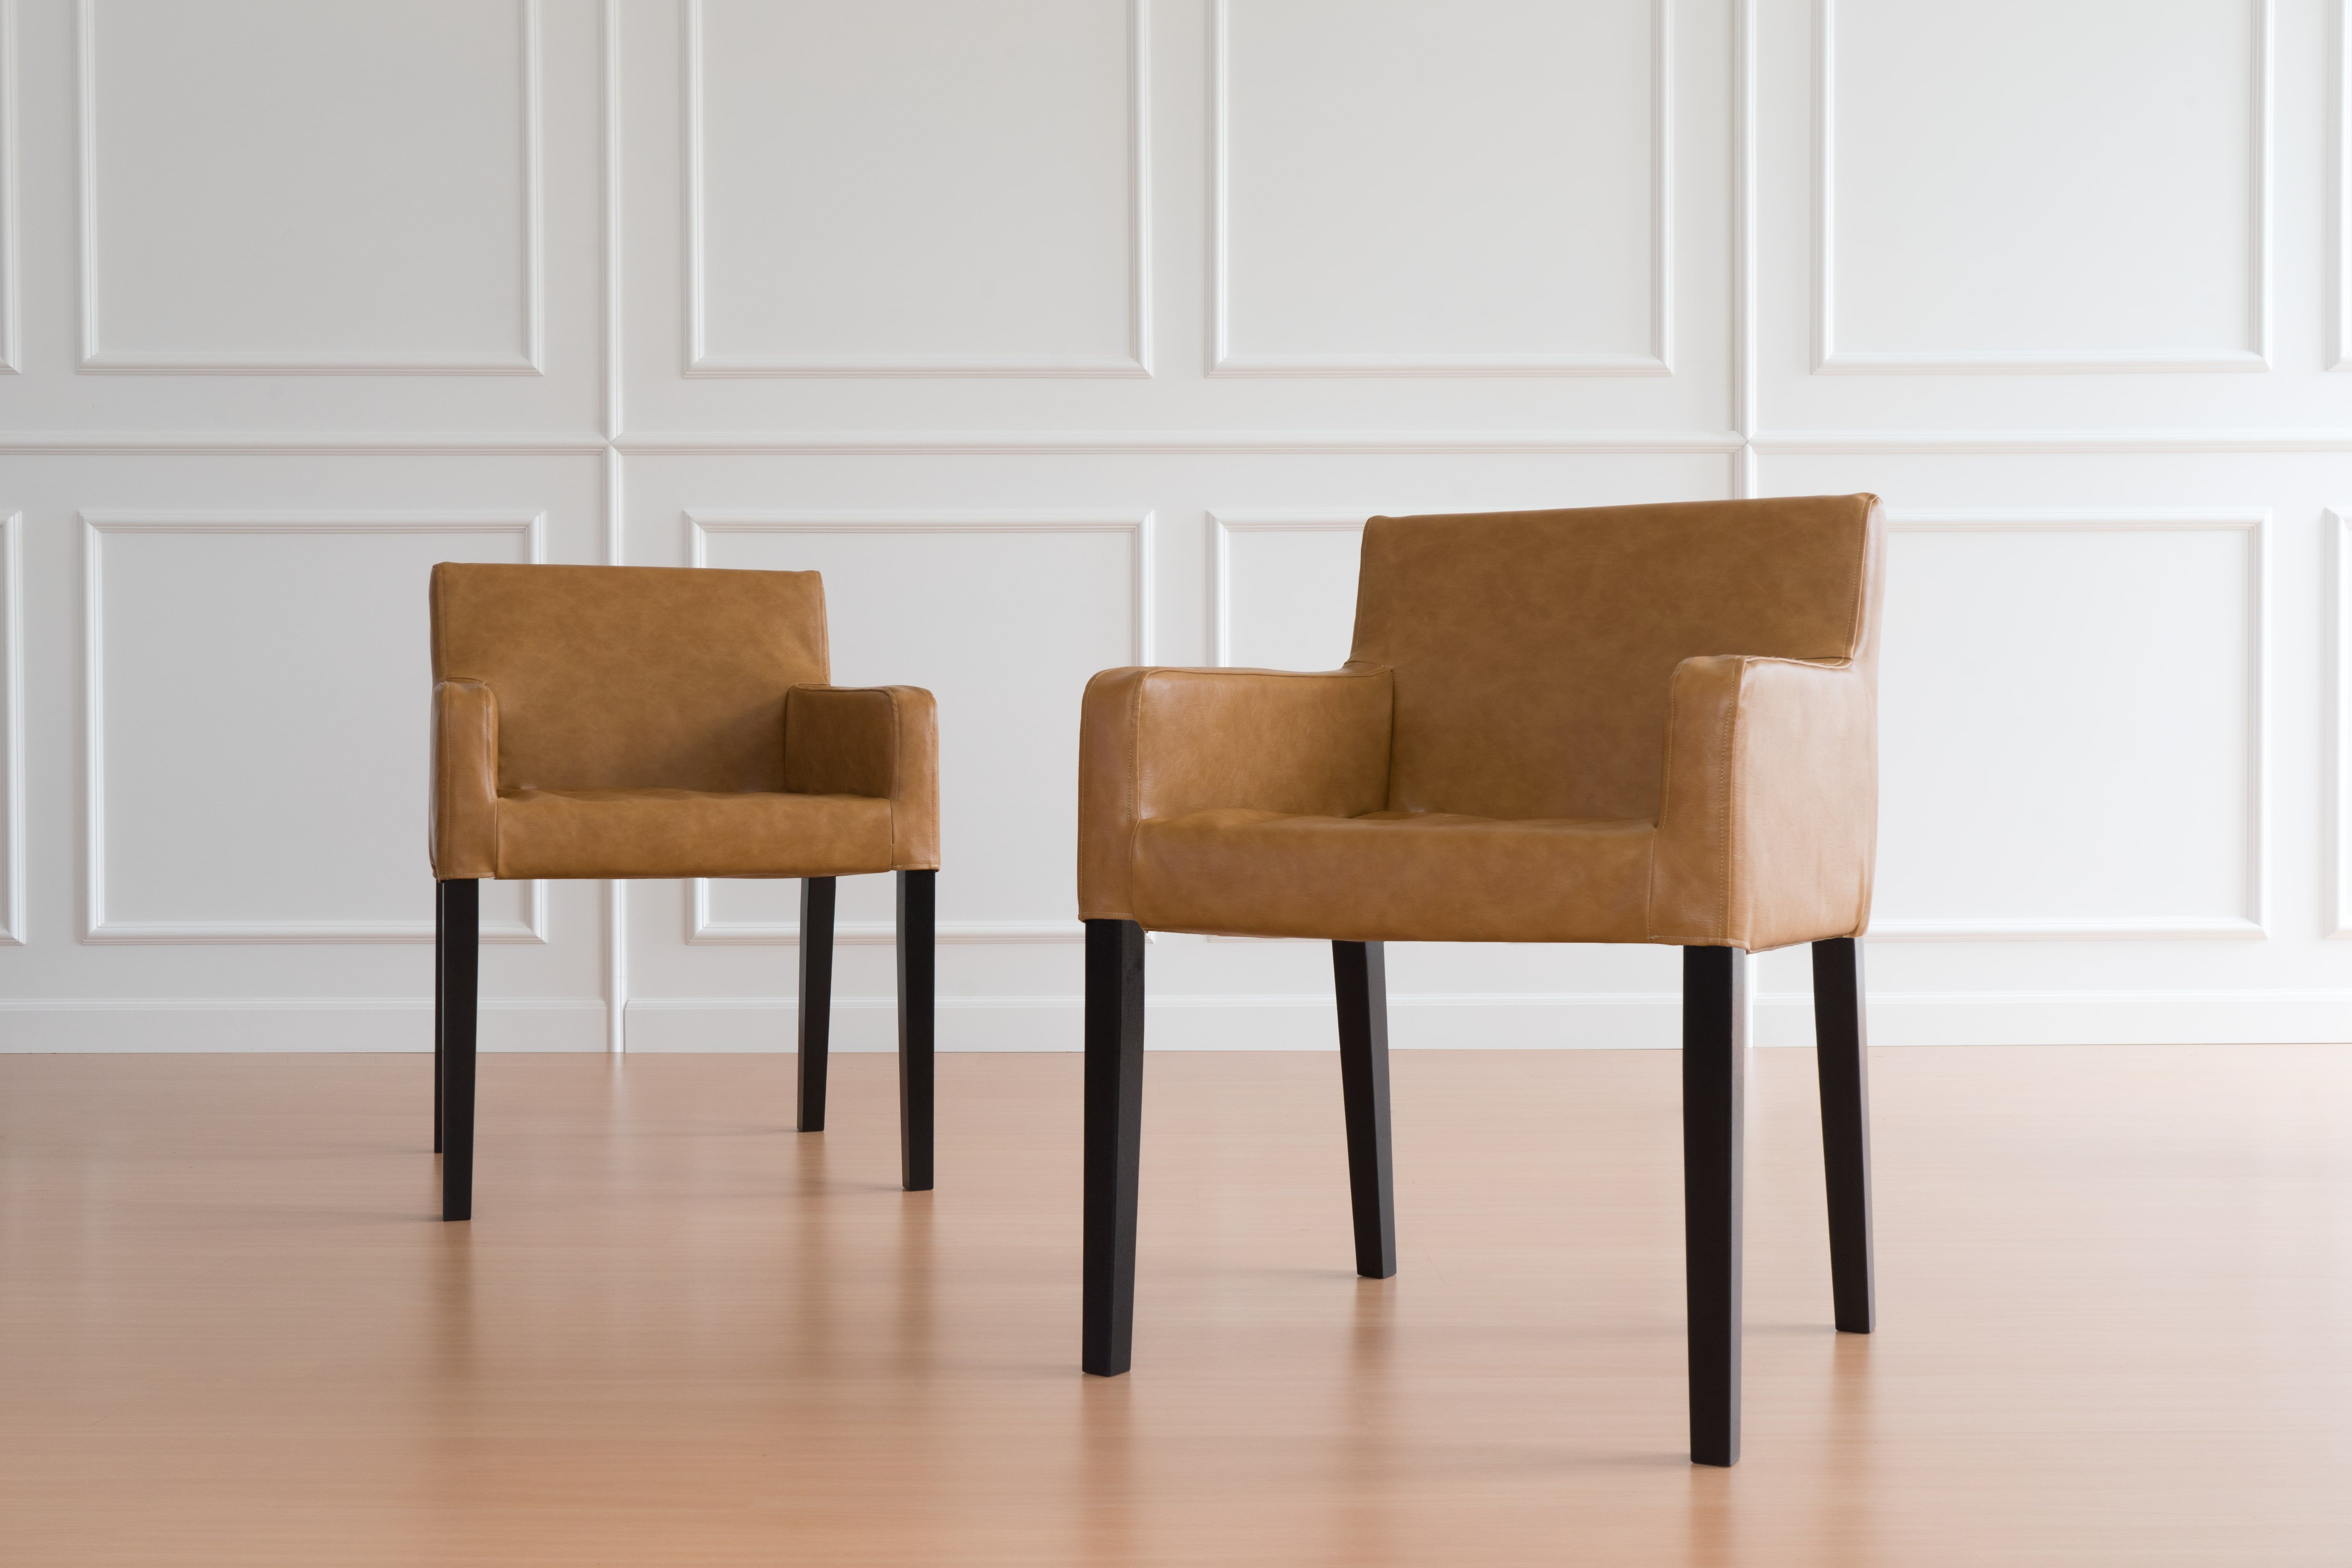 Ikea Nils Dining Chair covers in caramel/tan leather